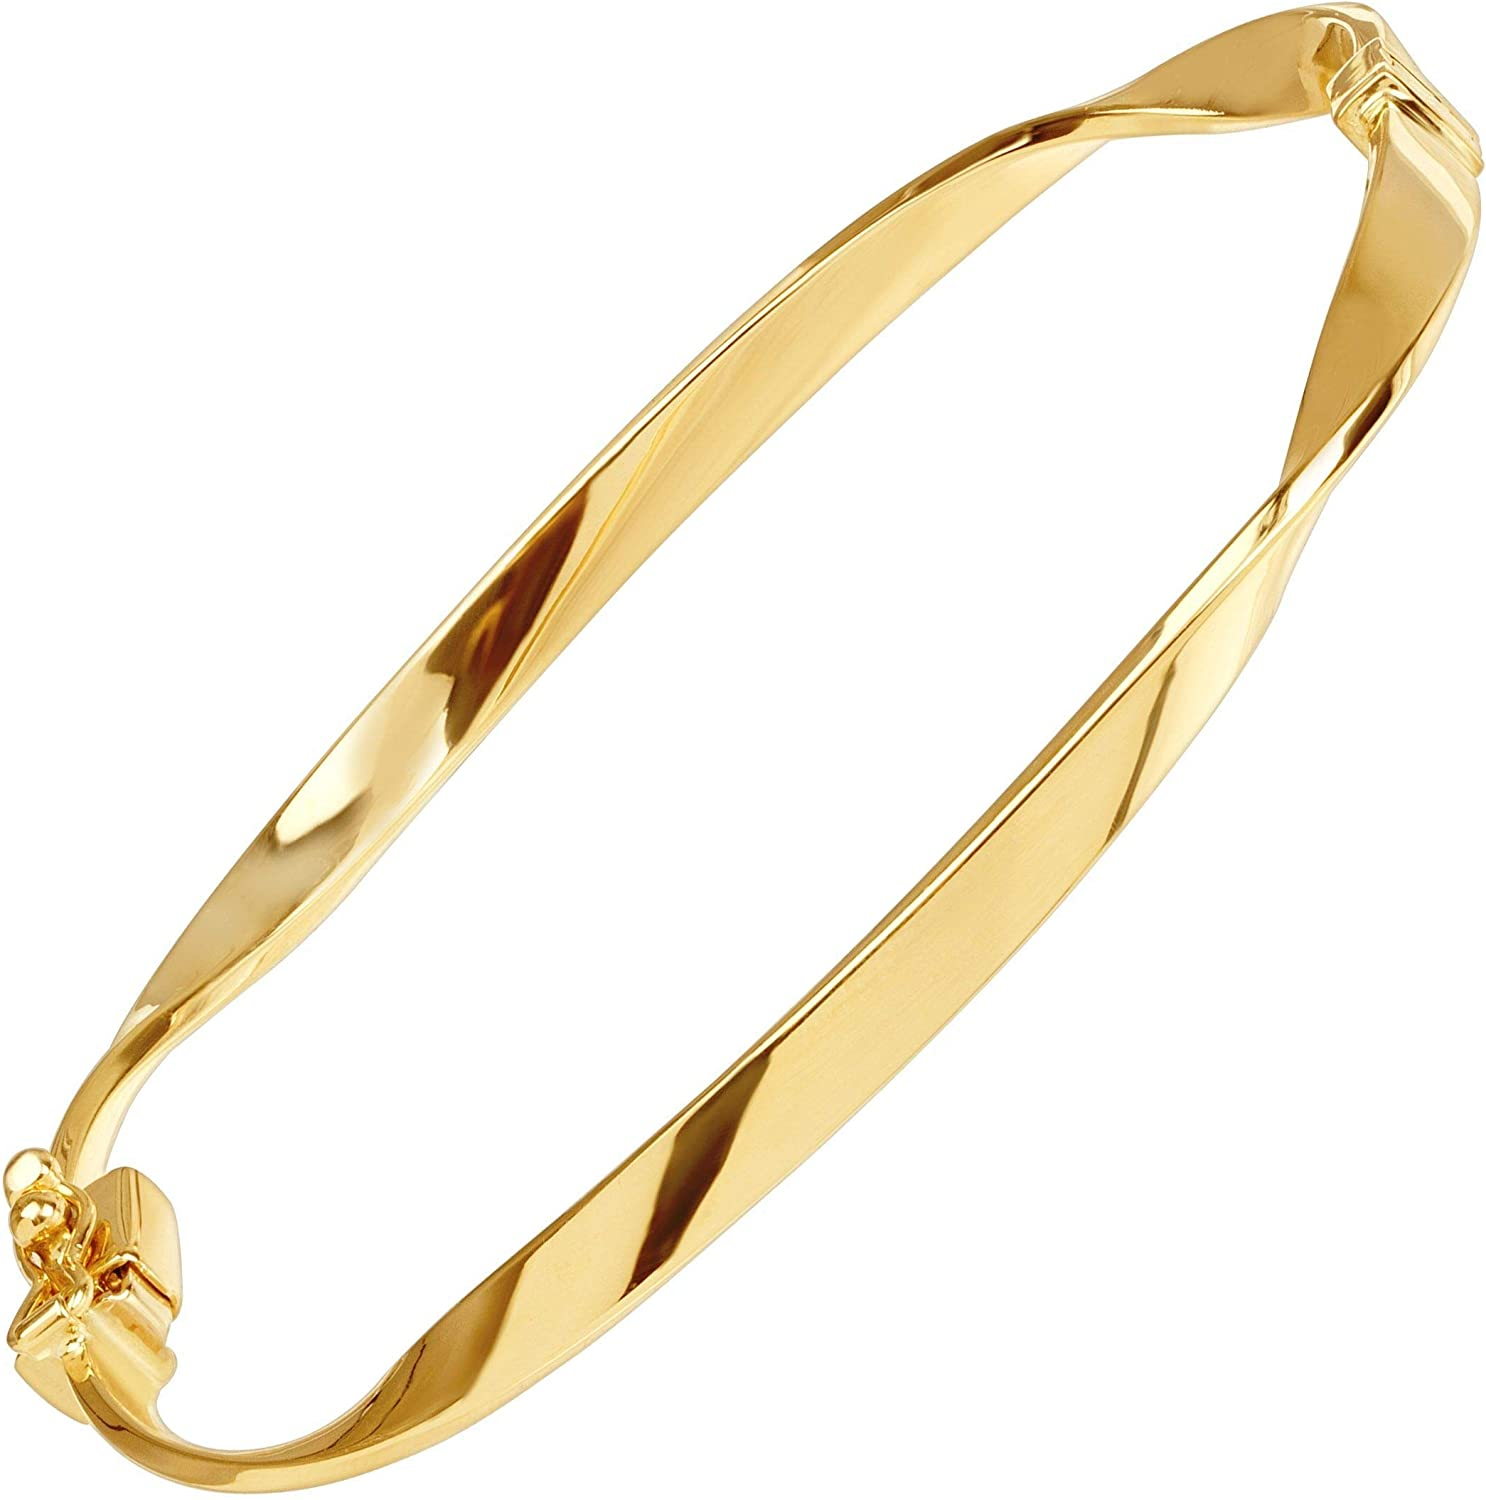 Welry Twisted Hinged Ribbon Bangle Bracelet in 14K Gold, 7